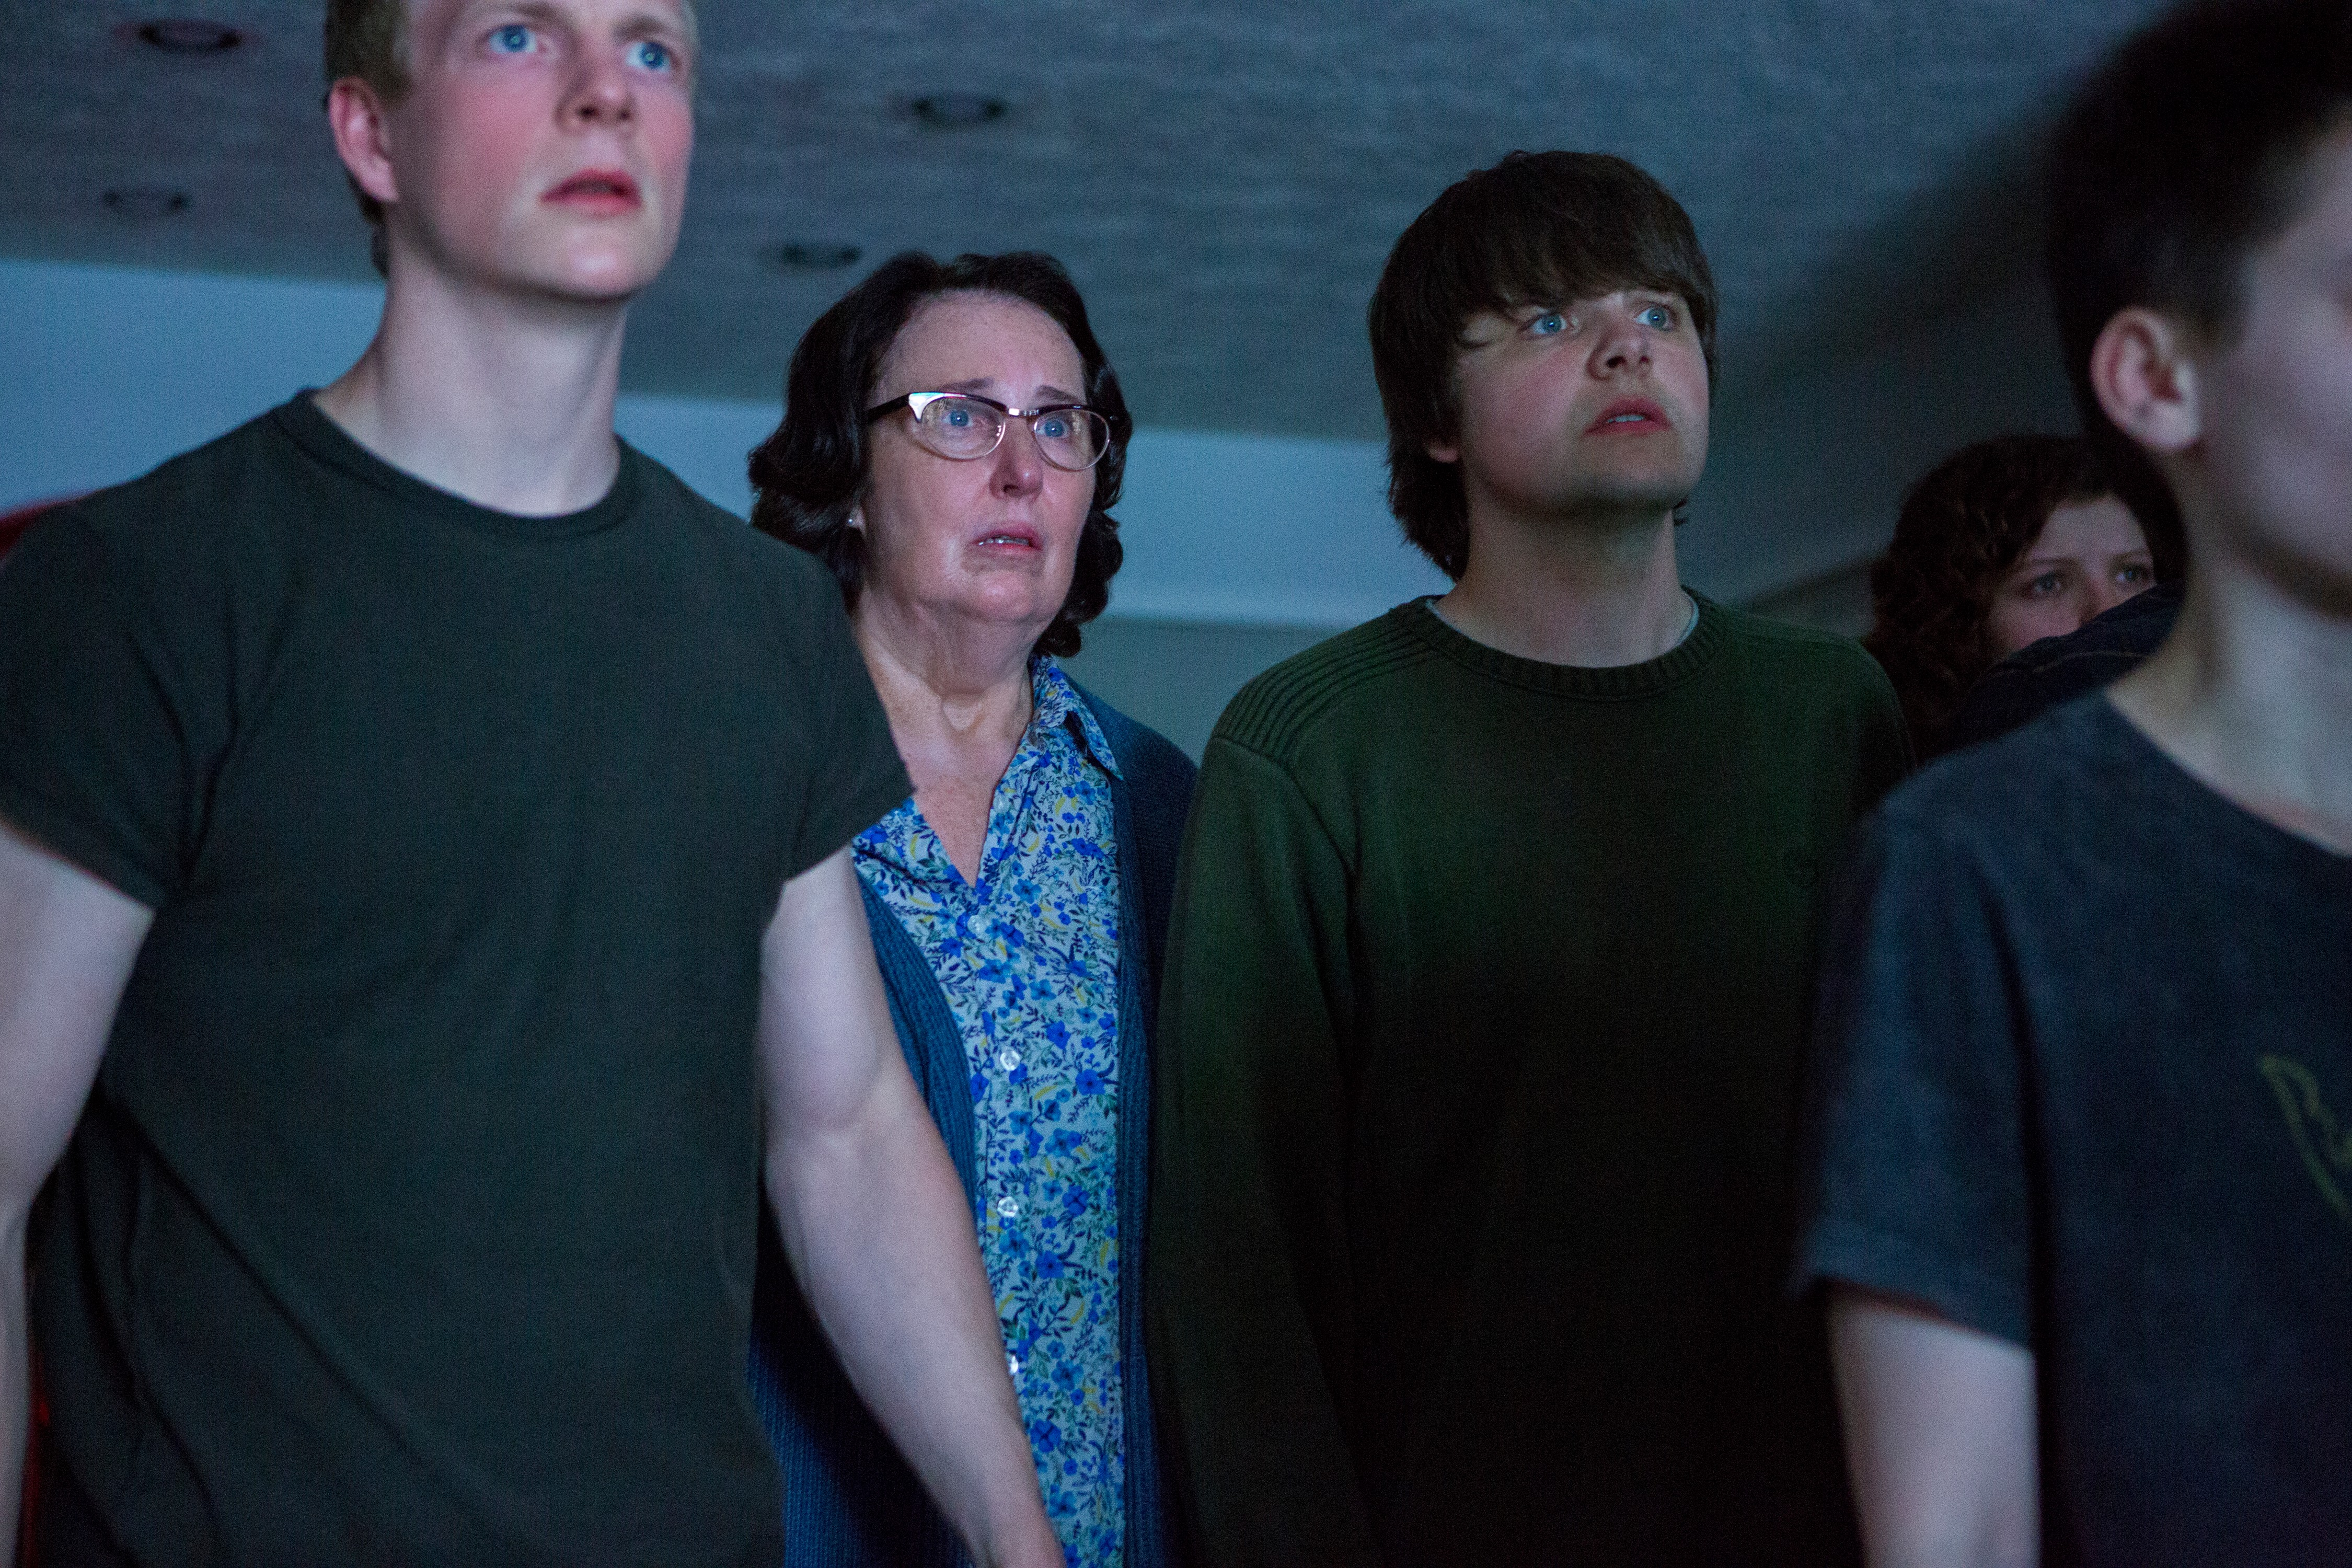 Patrick Gibson (Steve), Phyllis Smith (BBA) and Brendan Meyer (Jesse in The OA season 2)